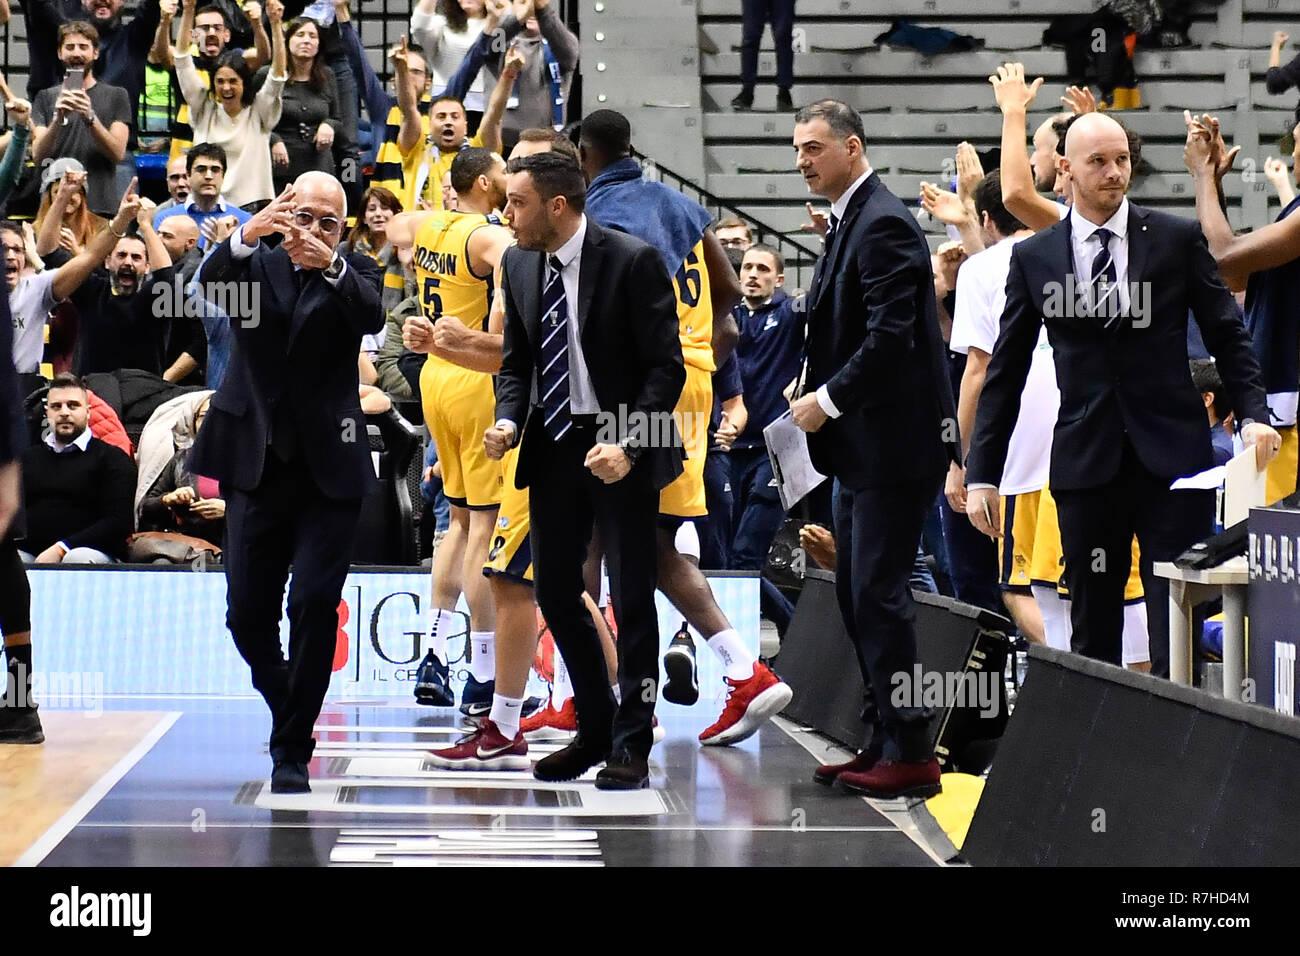 Turin, Italy. 8th Dec 2018. Larry Brown, headcoach Auxilium Fiat Torino during the LEGA BASKET SERIE A 2018/19 basketball match between FIAT AUXILIUM TORINO vs DOLOMITI TRENTO at PalaVela on 8th Dicember, 2018 in Turin, Italy. Credit: FABIO PETROSINO/Alamy Live News - Stock Image